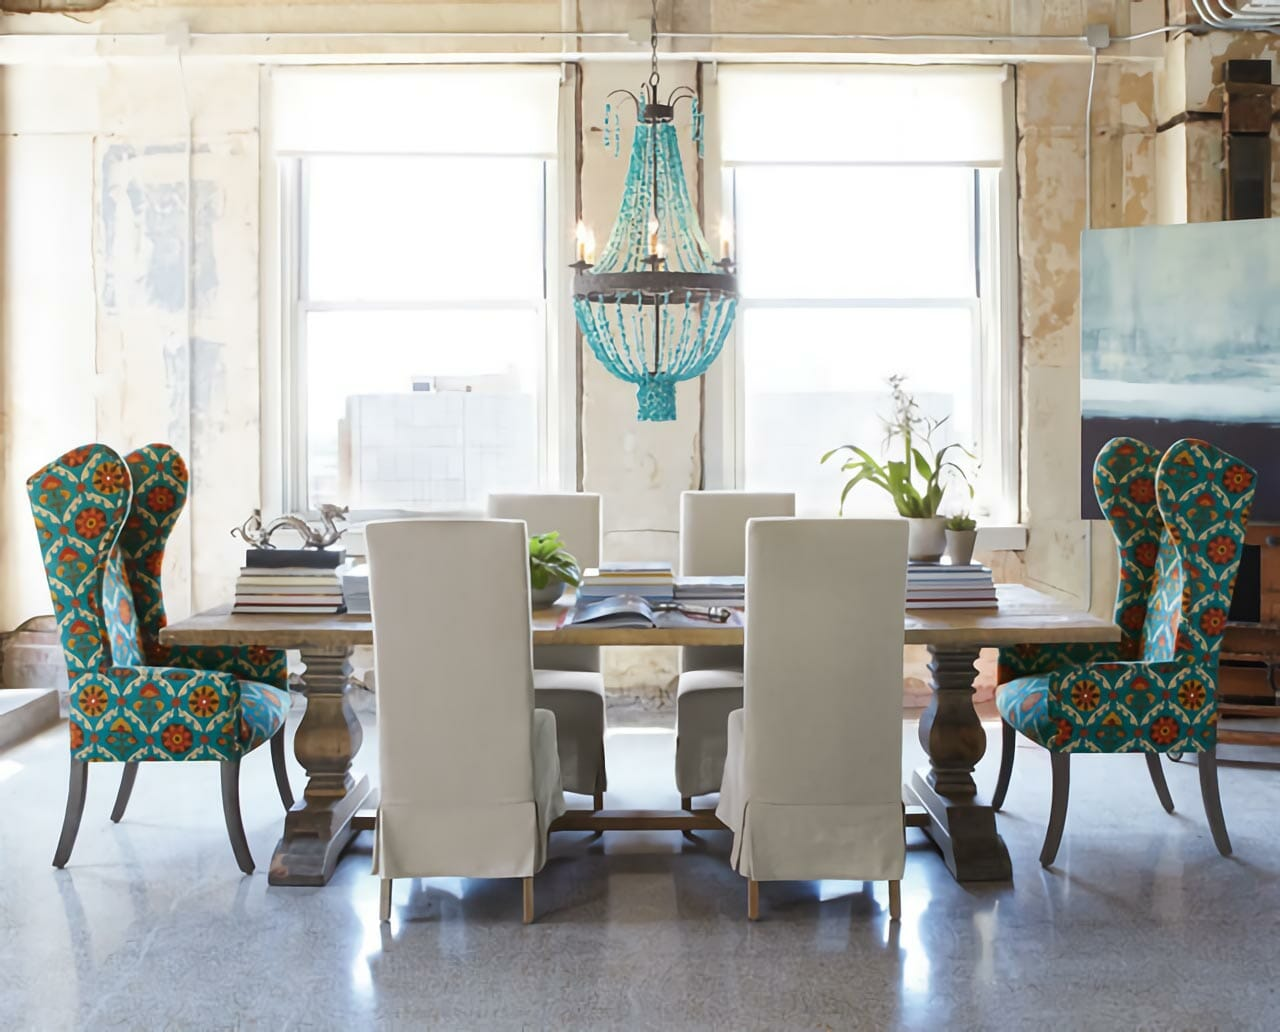 Turquoise upholstered dining chair eclectic interior ideas